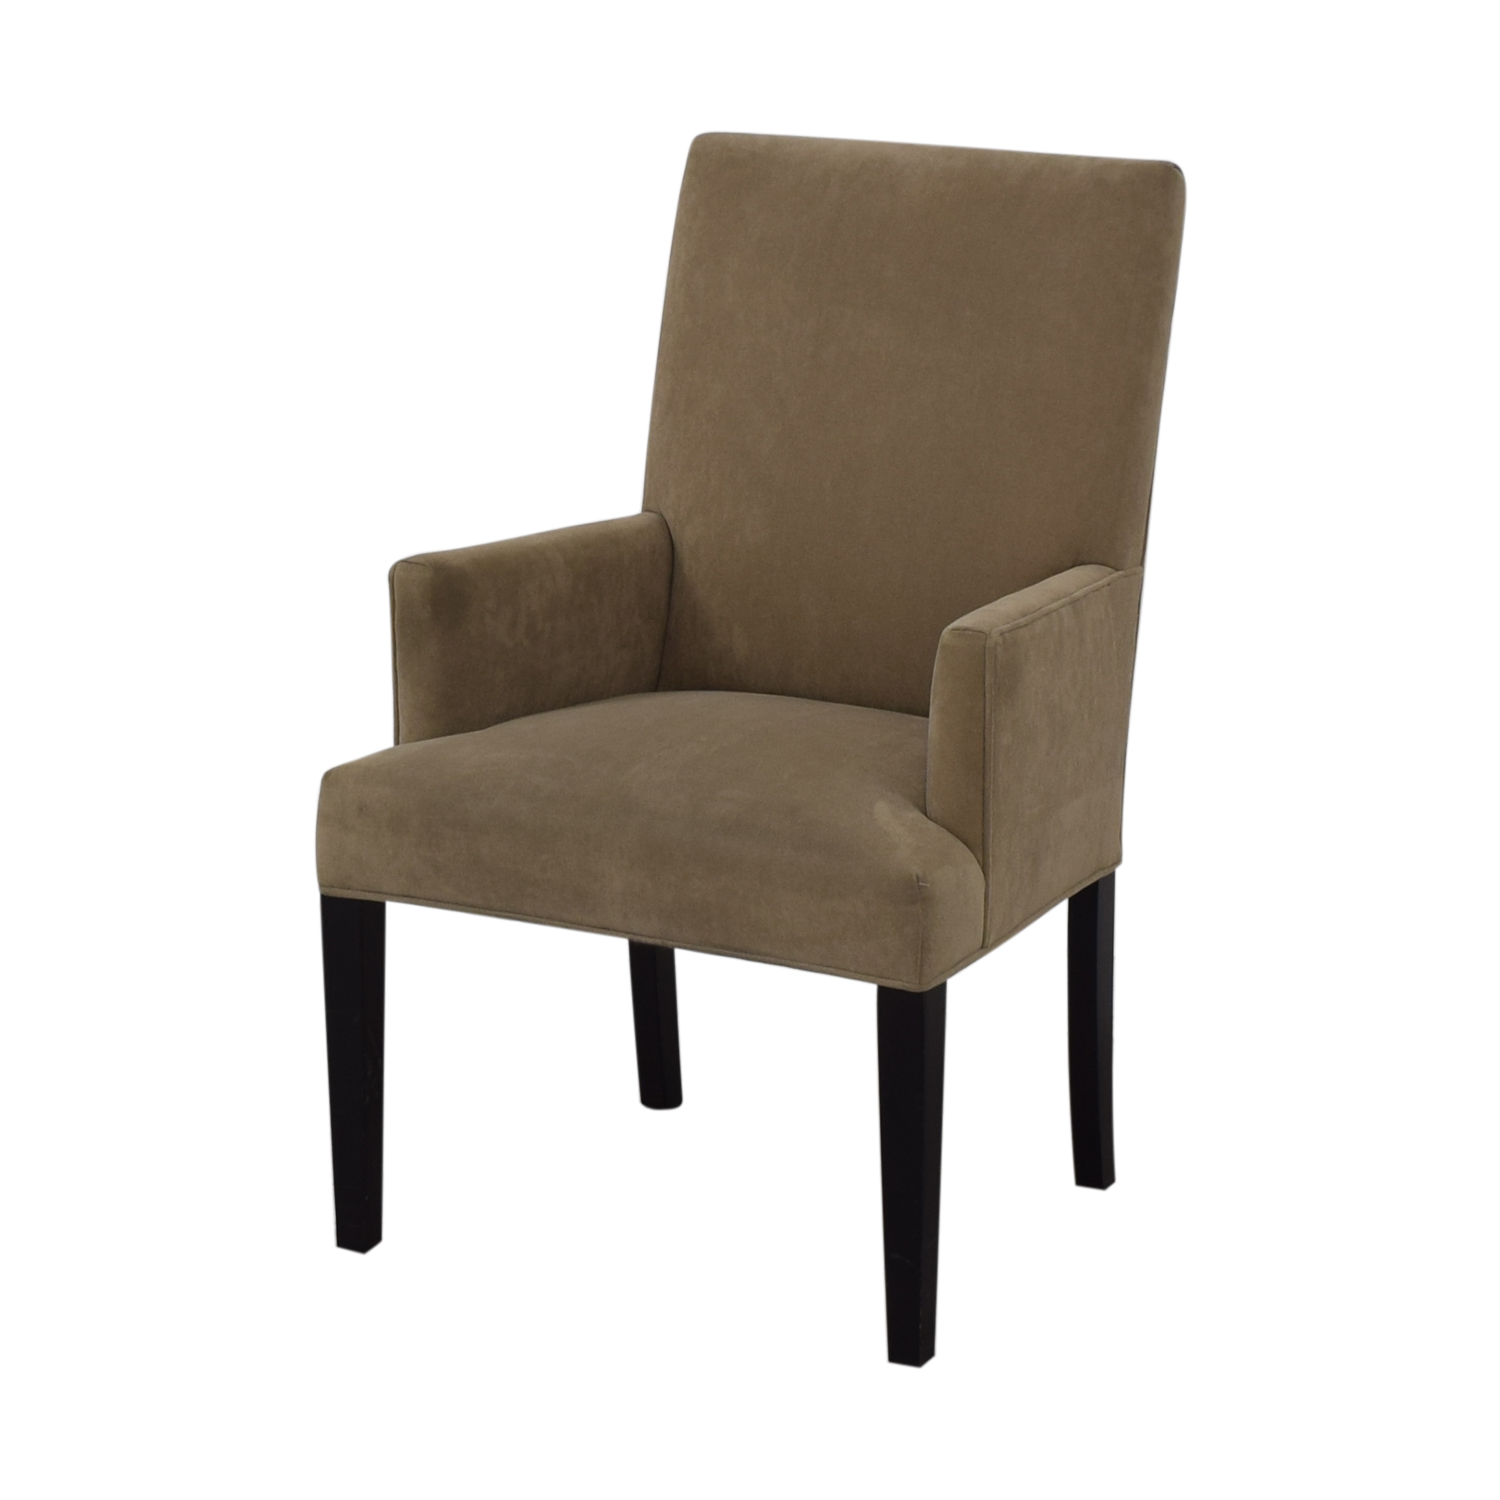 buy Crate & Barrel Crate & Barrel Tan Dining Chair online